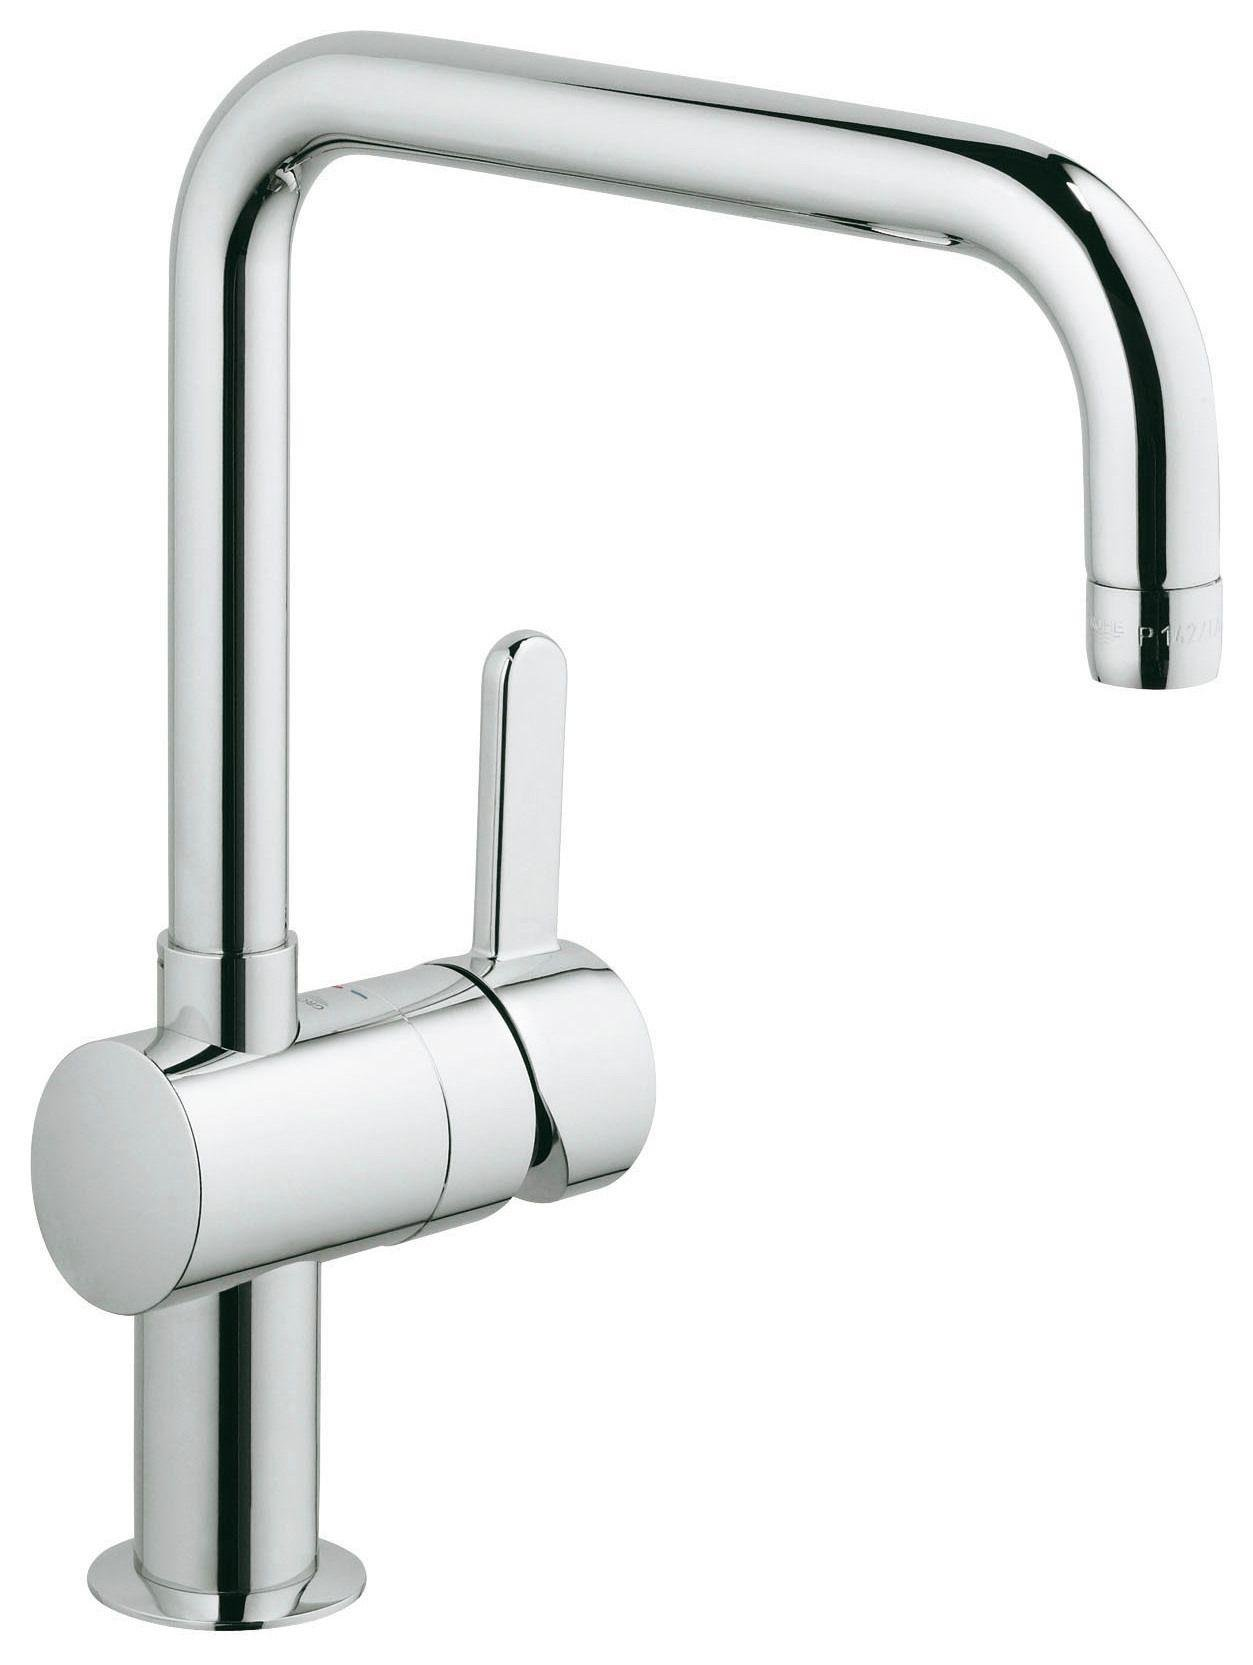 Image of Grohe - Flair - Kitchen Tap